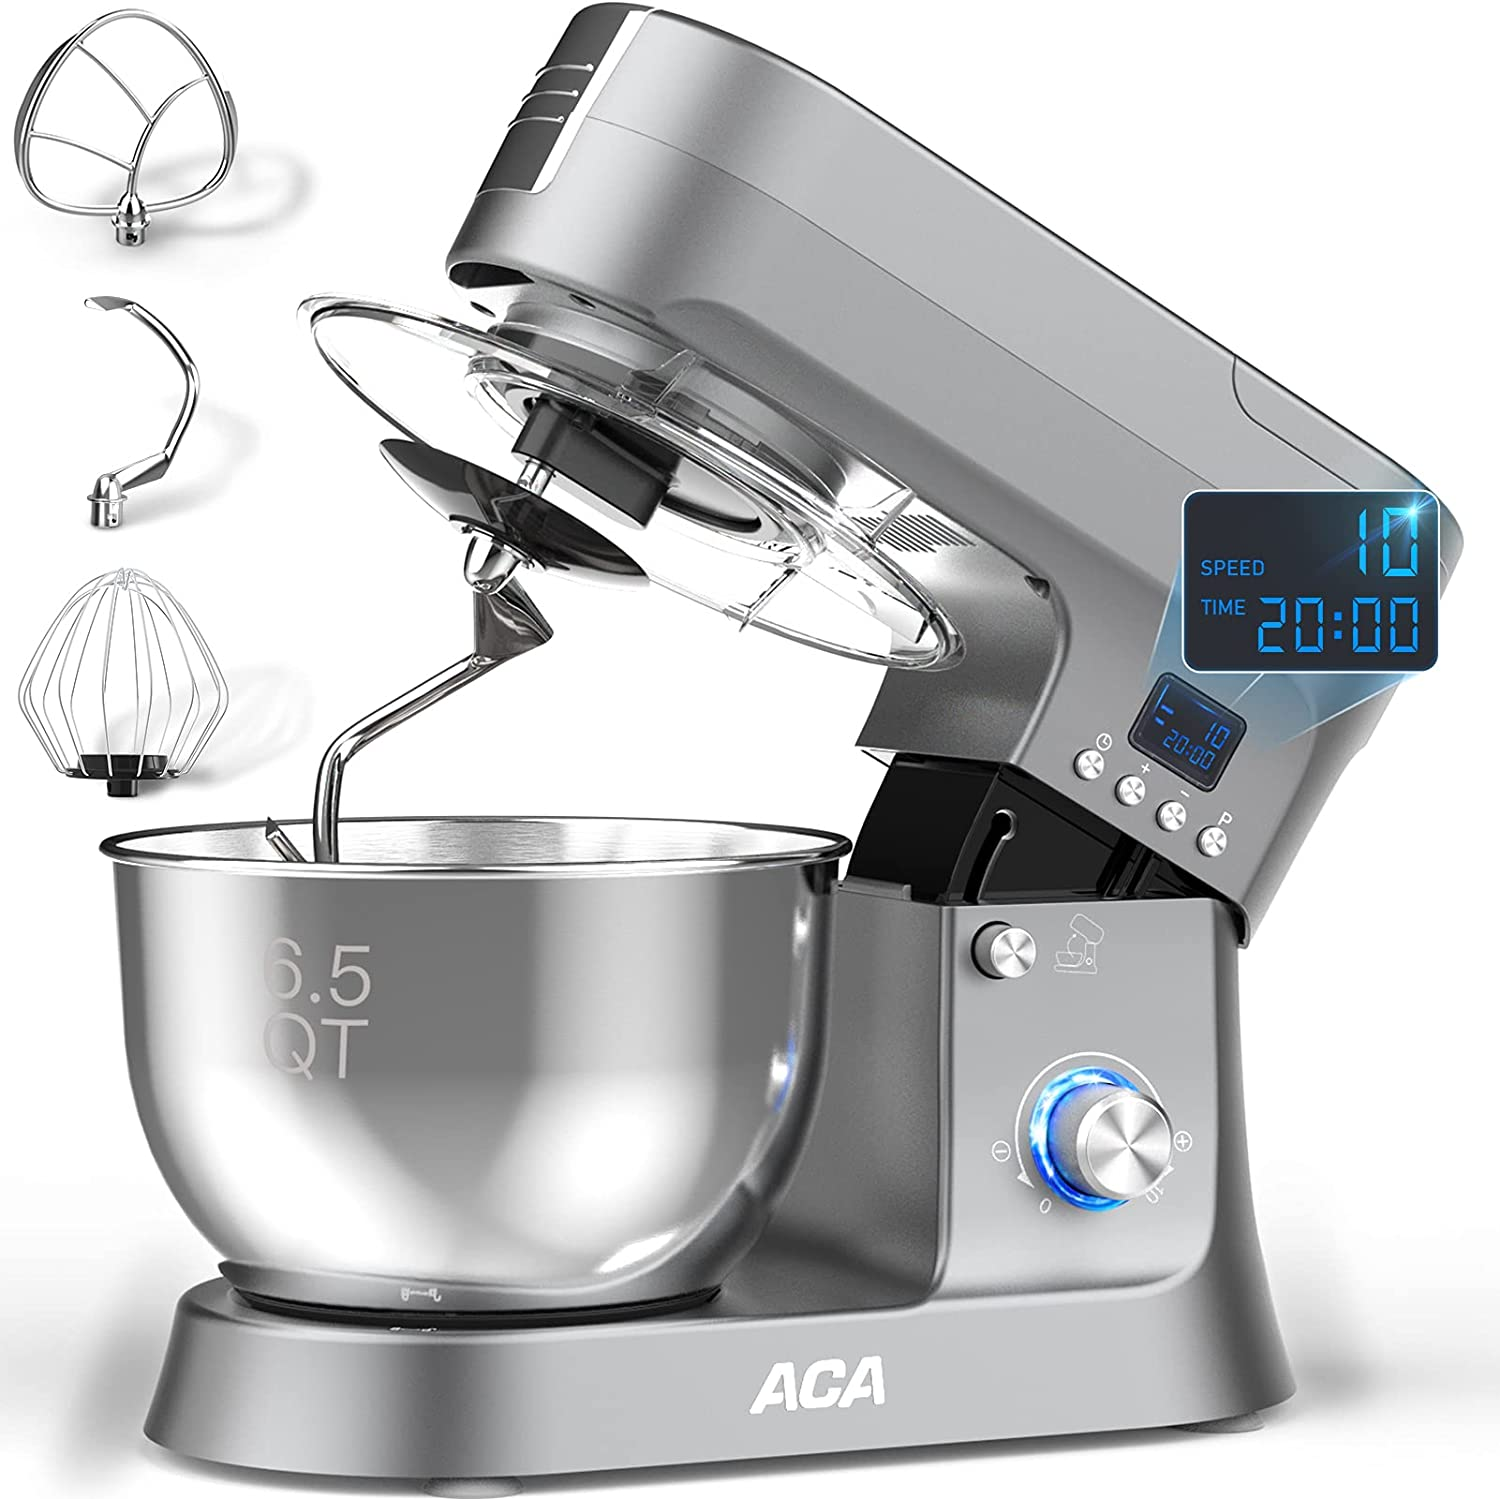 Stand Mixer, ACA 10-Speed & Pulse 800W Electric Kitchen Mixer with 6.5 Qt Stainless Steel Bowl, LCD Timer Food Mixer for Baking with Dough Hook, Wire Whip & Flat Beater, Splash Guard for Home Cooking